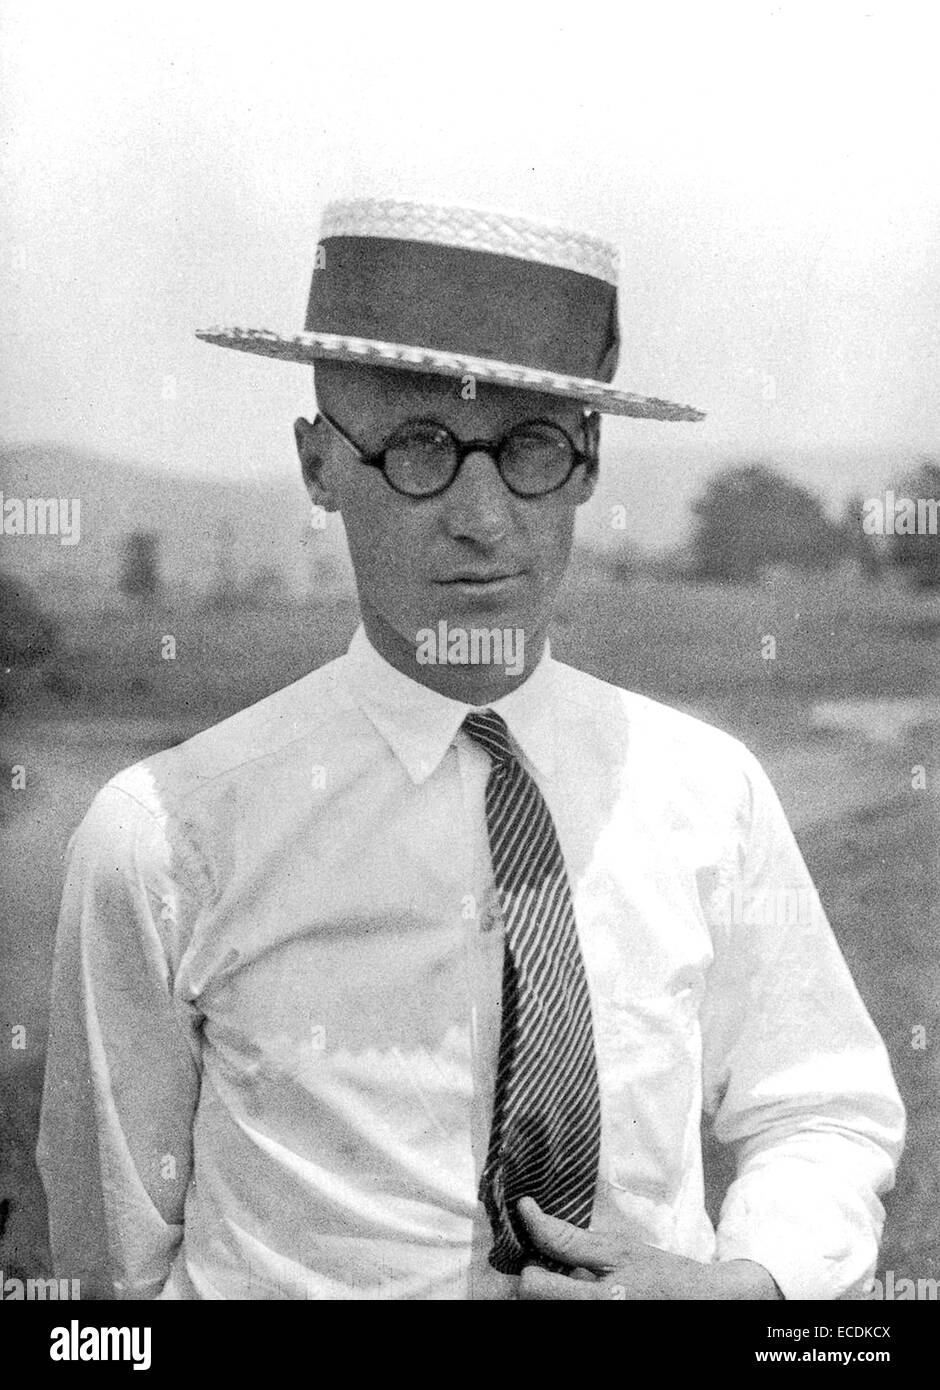 creationism stock photos creationism stock images alamy john t scopes 1900 1970 teacher in dayton tennessee in